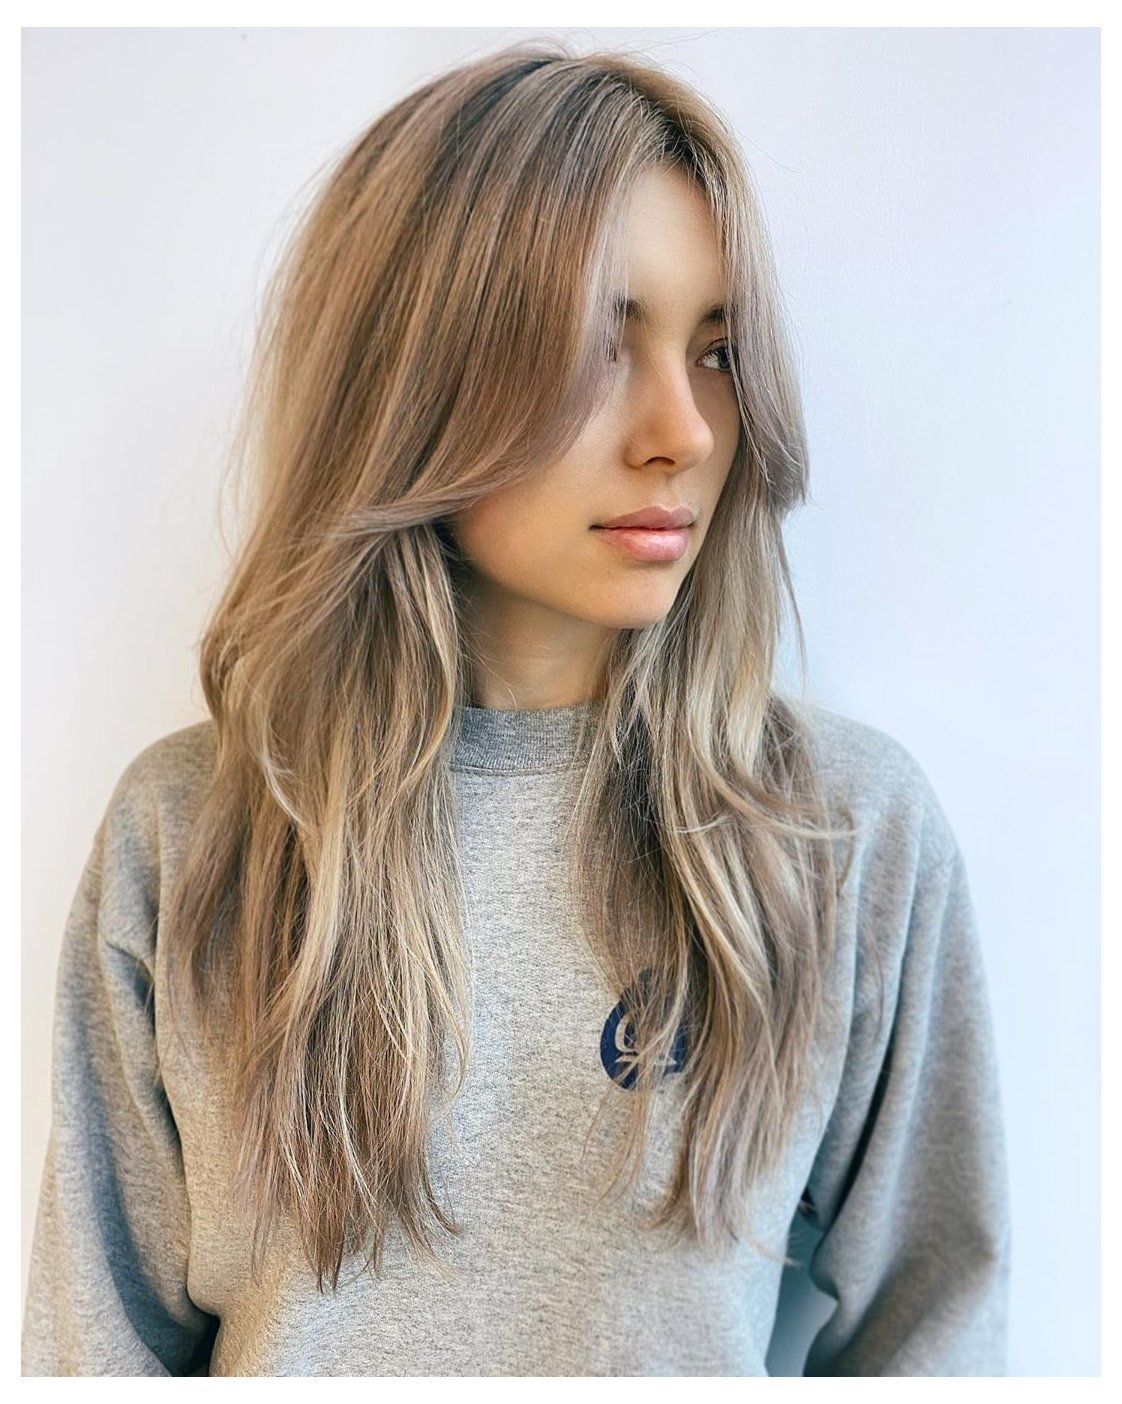 14 Cute Long Layered Haircuts With Bangs In 2020 Curtain Bangs Long Hair Own This Instant Celebrity Look Hair Styles Long Hair Styles Long Hair With Bangs